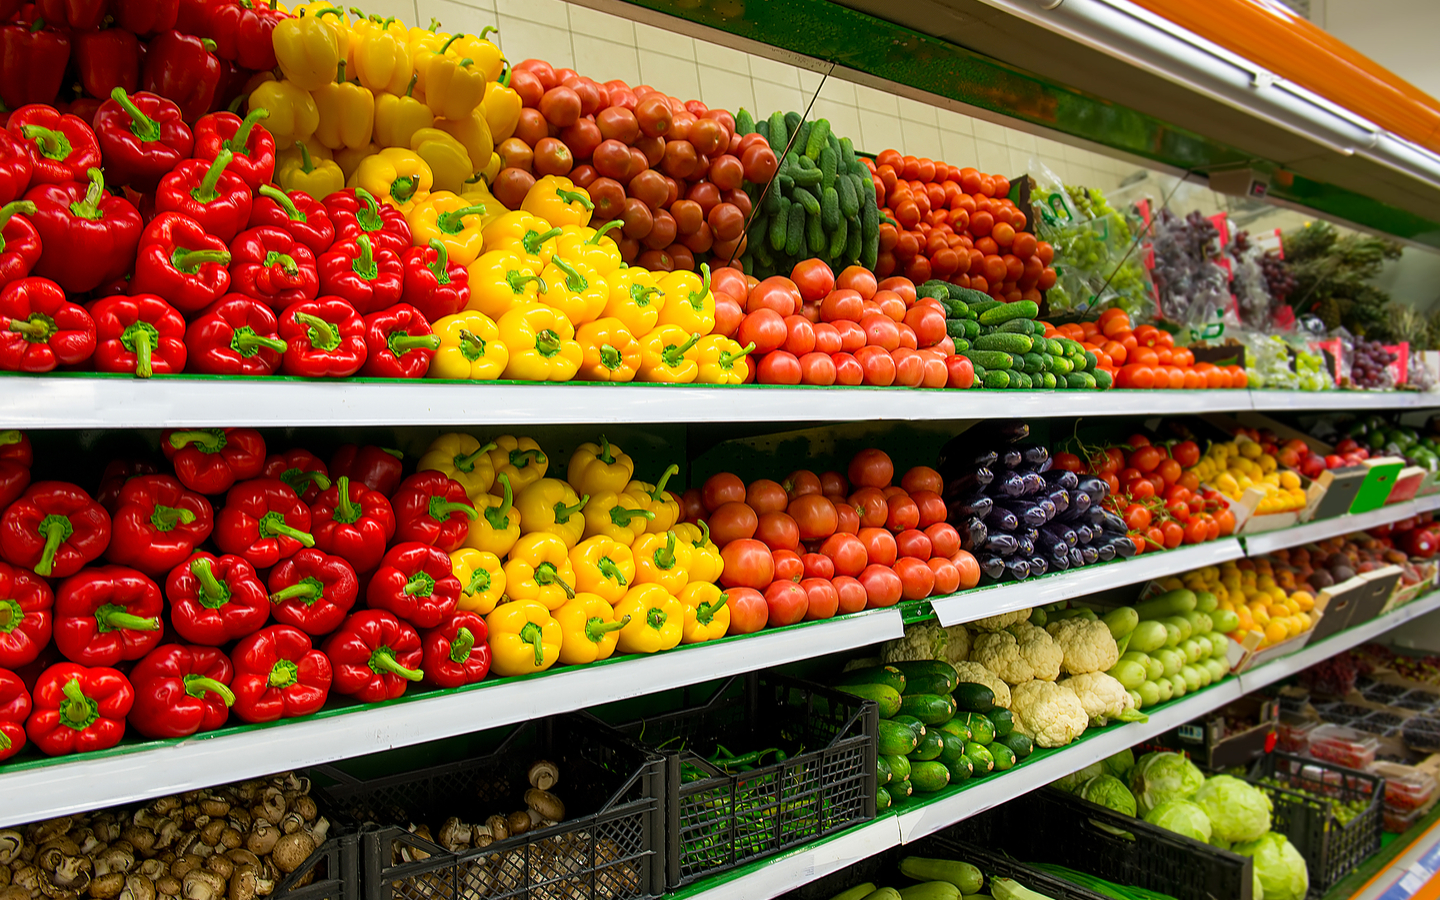 Fruits and vegetables in a shelf at a supermarket